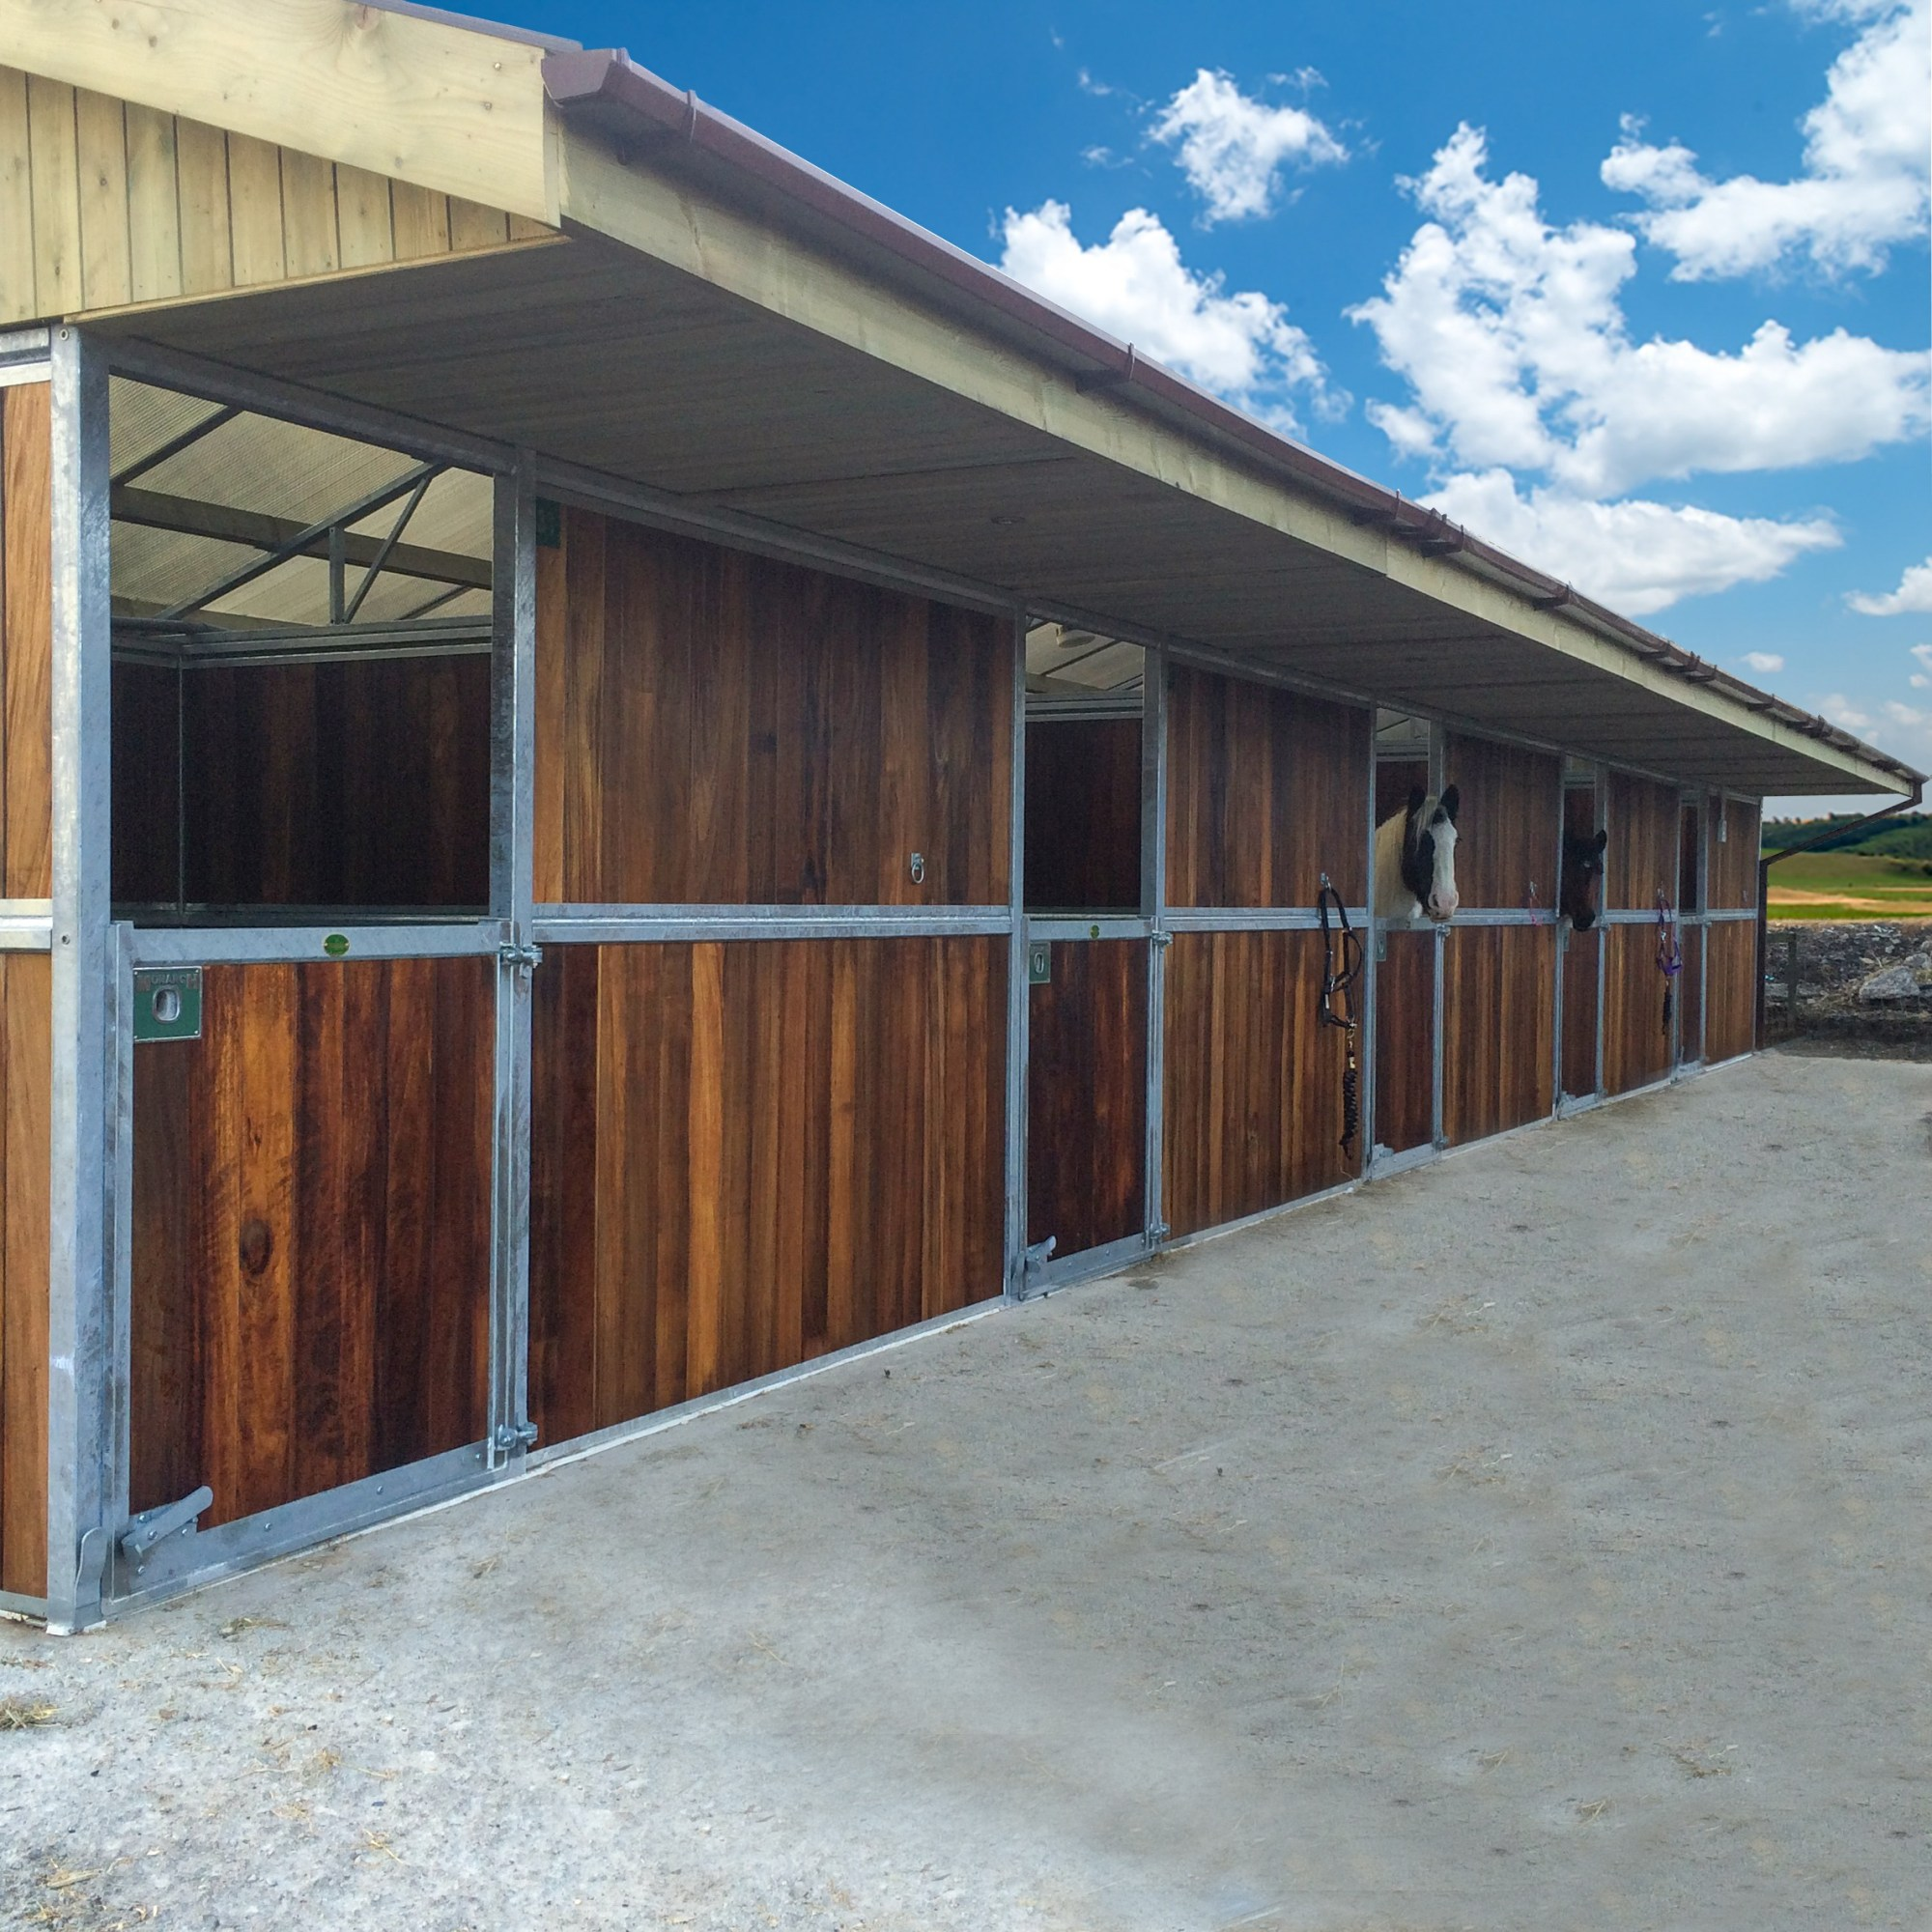 Monarch Back-to-back horse barn by Monarch equestrian